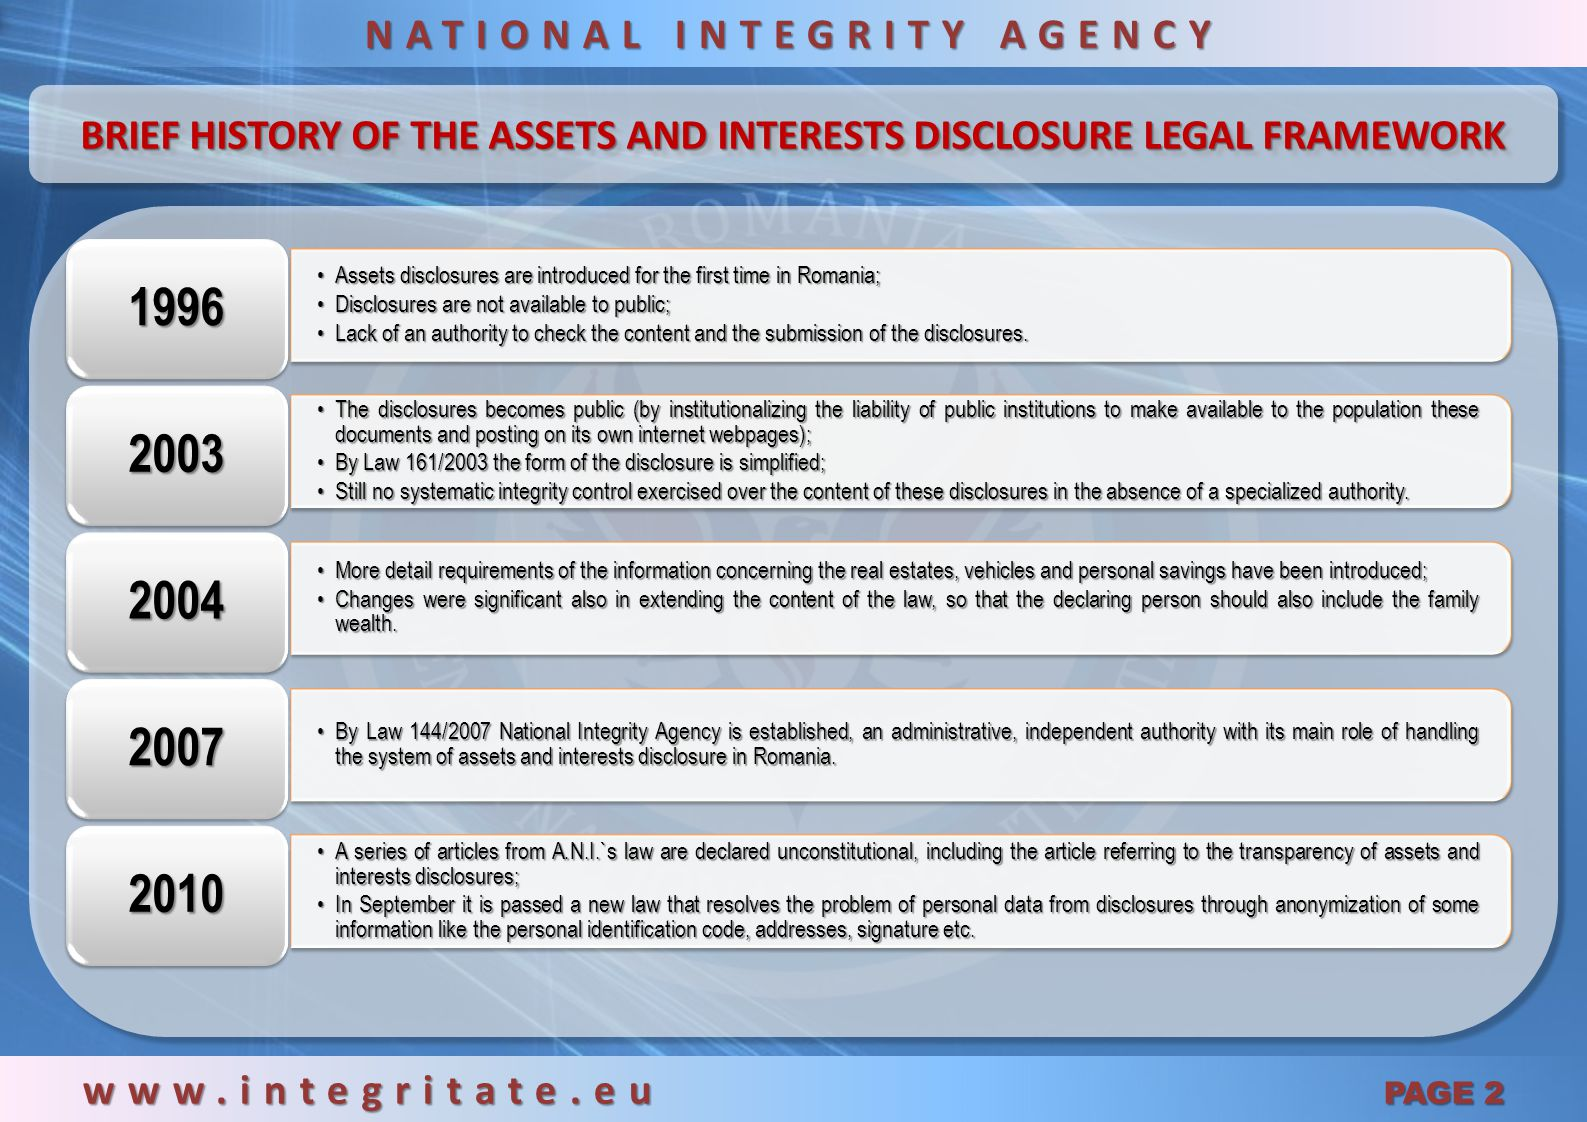 1996 2003 2004 2007 2010 NATIONAL INTEGRITY AGENCY